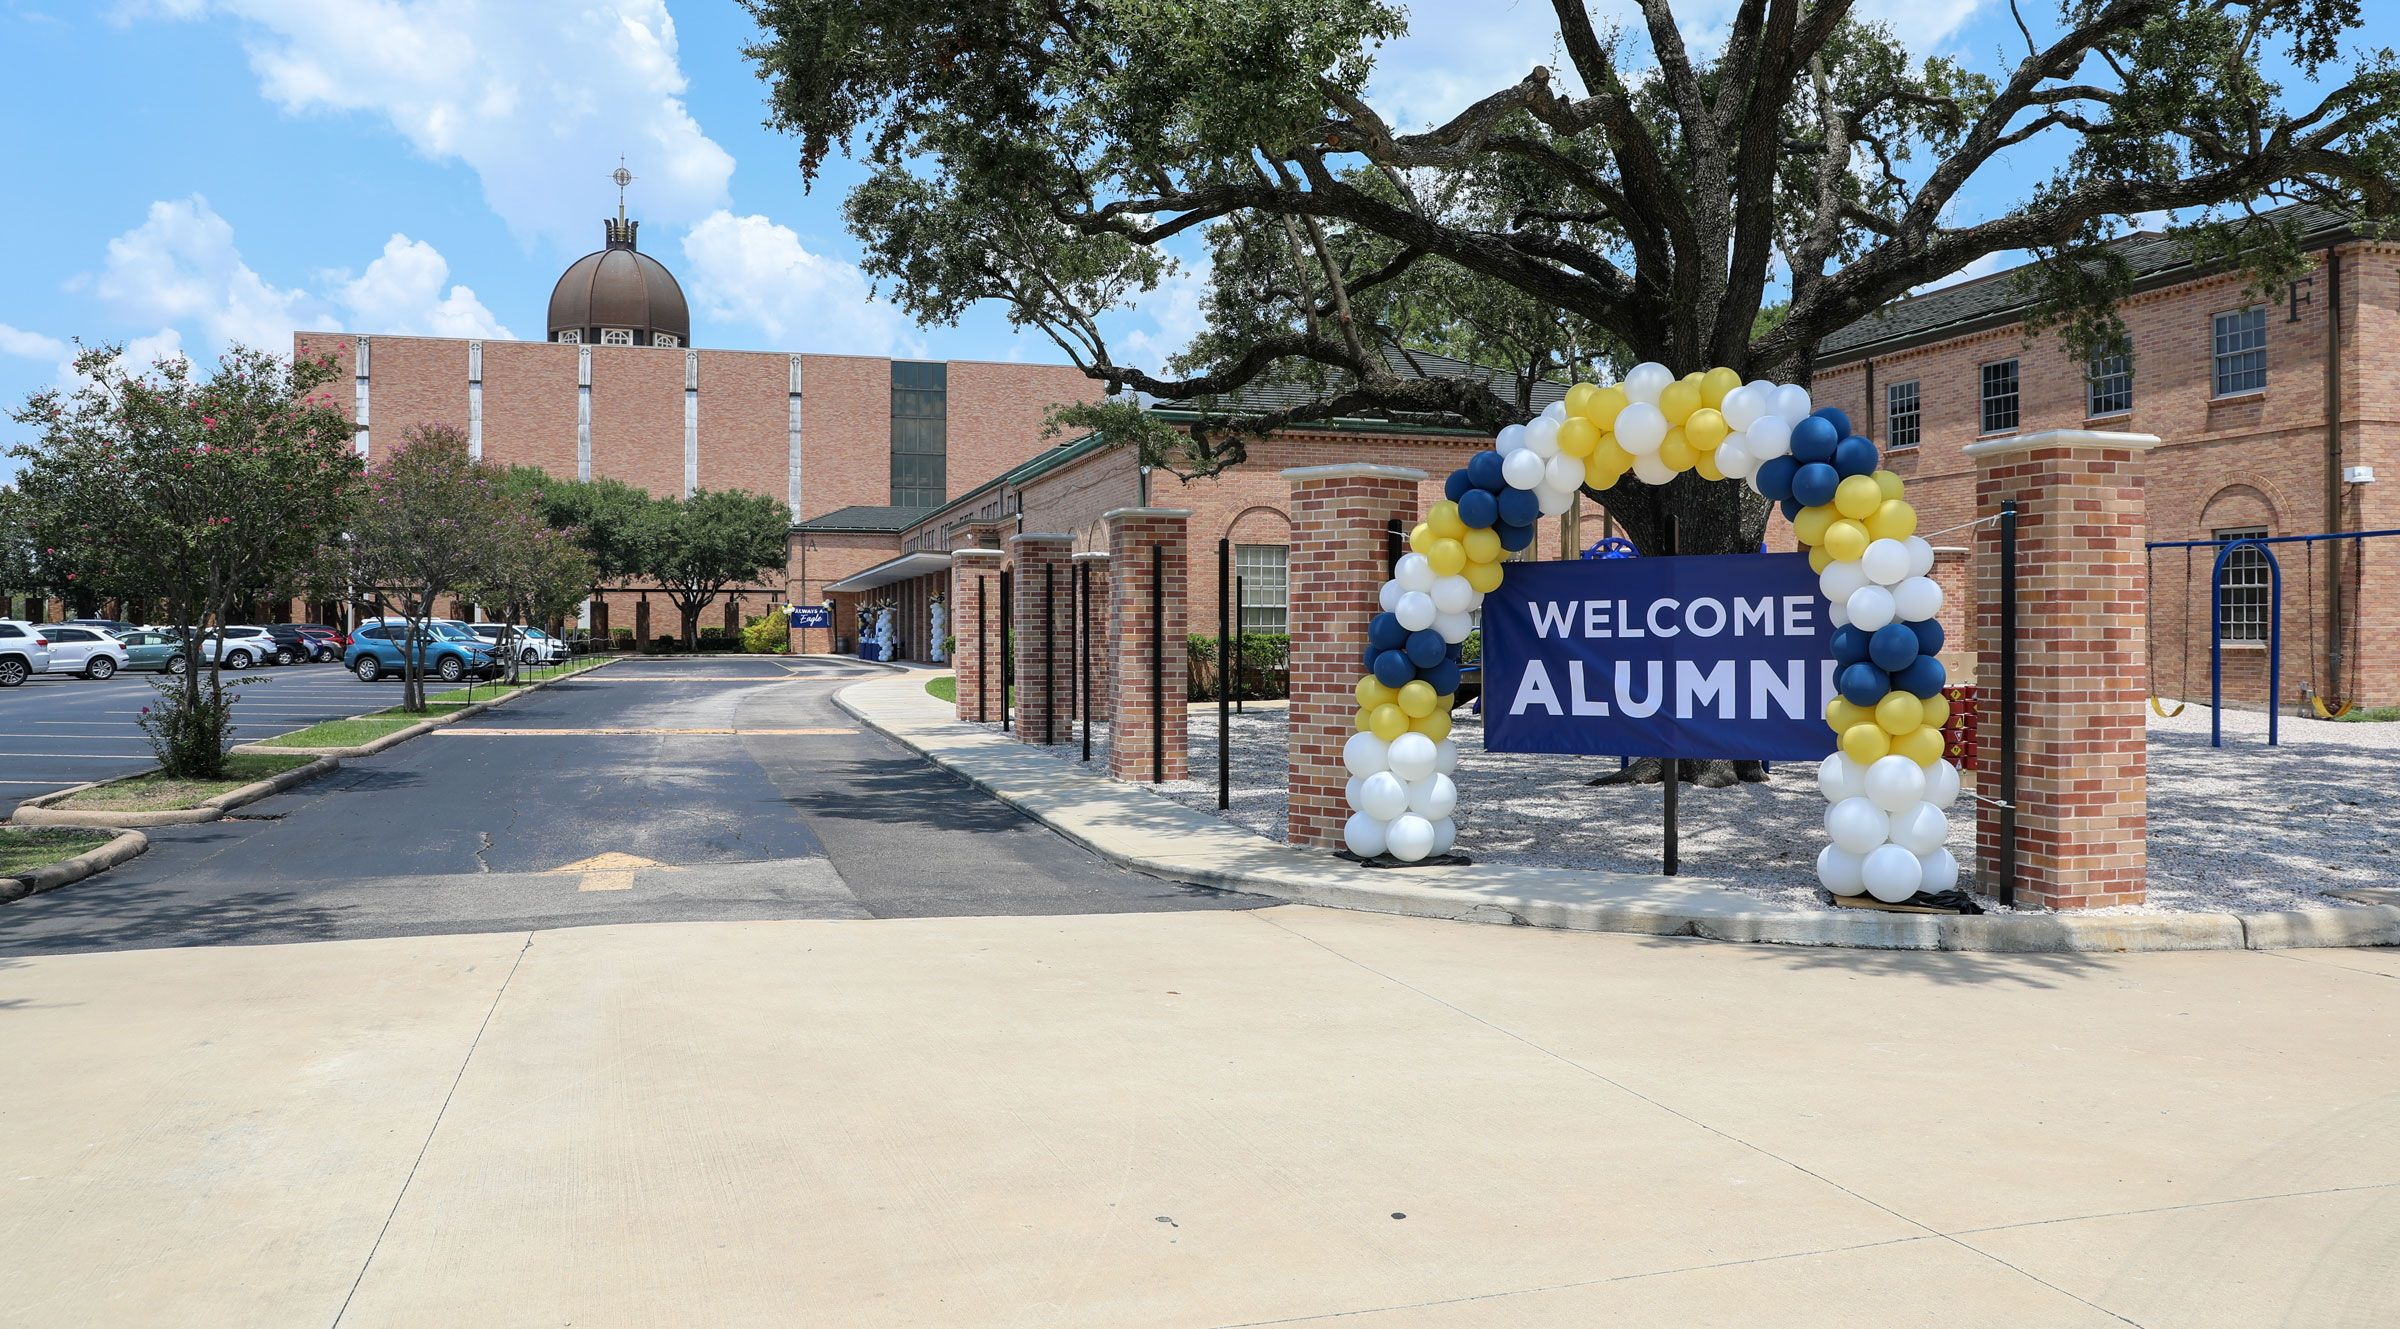 Second Baptist School with balloon arch welcoming alumni